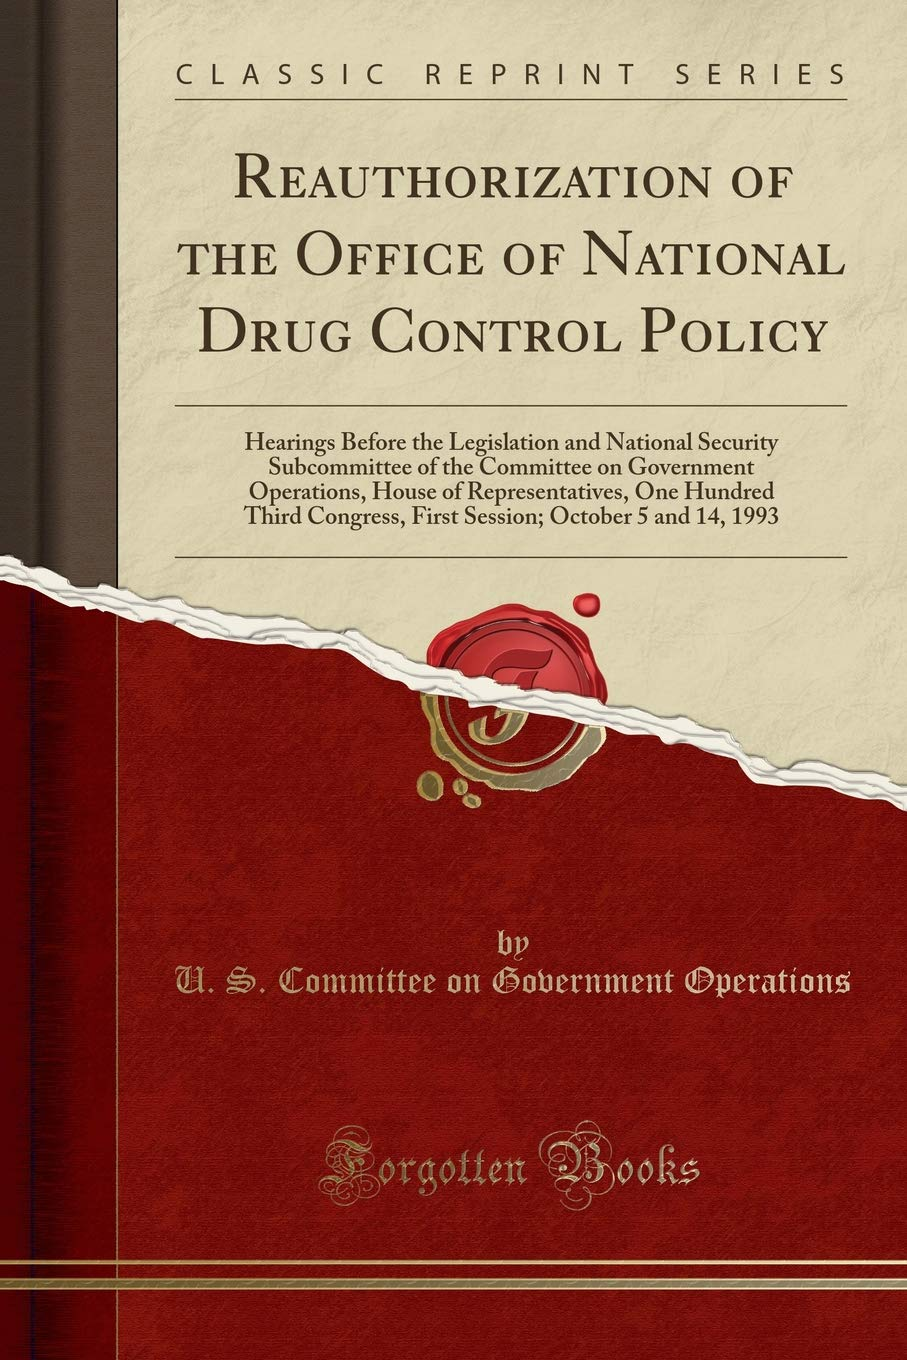 Reauthorization of the Office of National Drug Control Policy: Hearings Before the Legislation and National Security Subcommittee of the Committee on ... Third Congress, First Session; October 5 and Text fb2 ebook